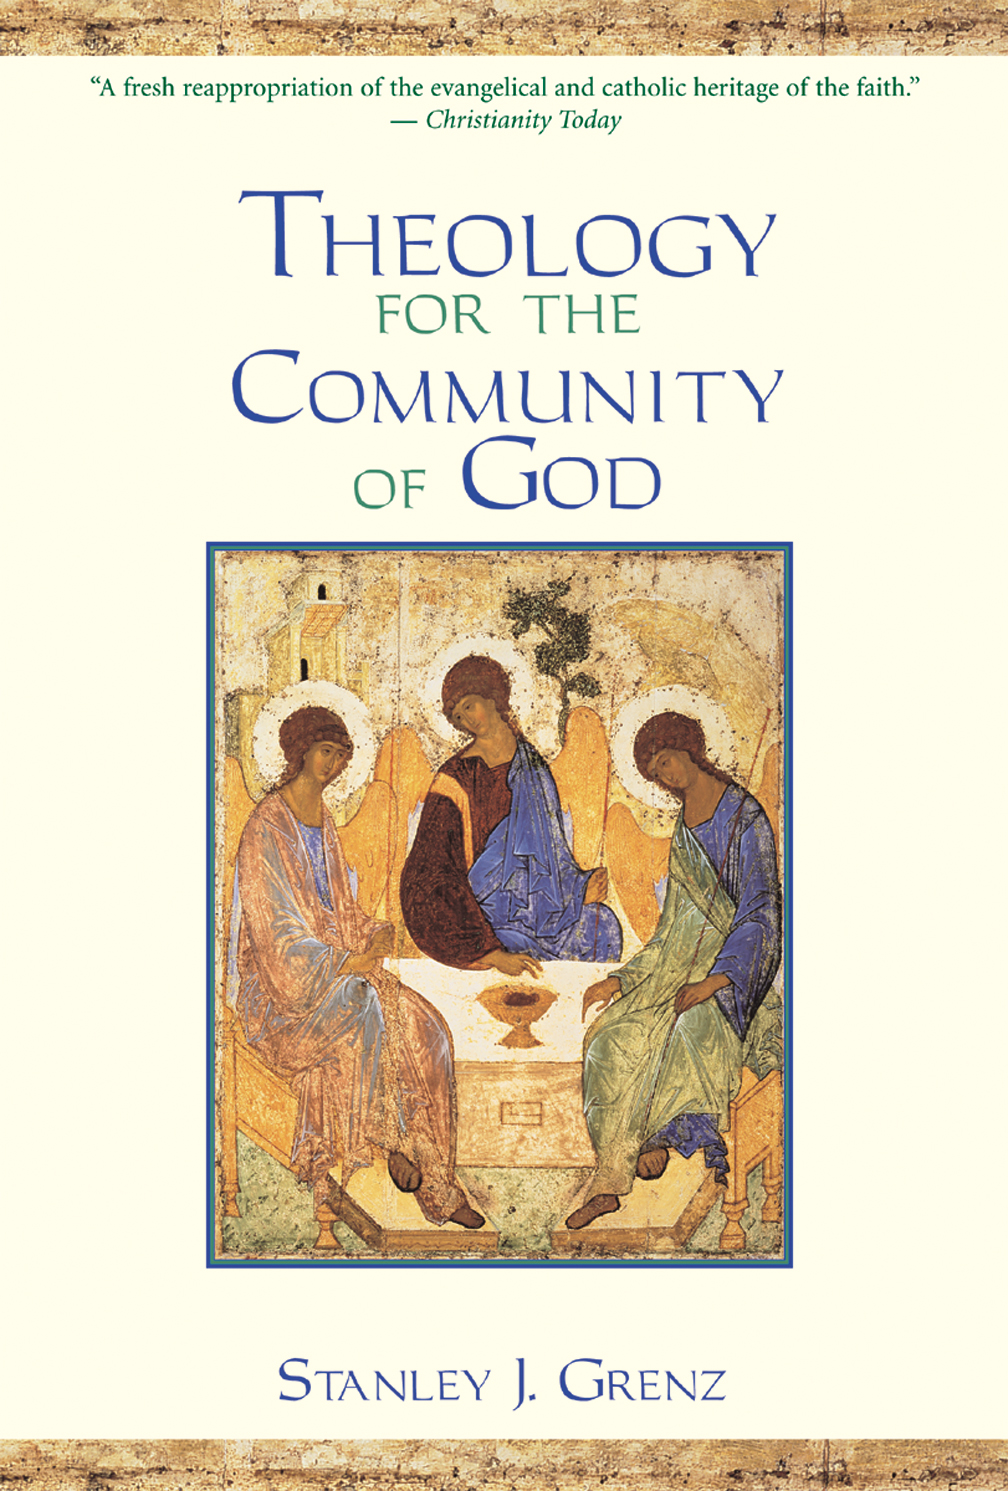 theology of community essay One of the greatest contributions that acts makes to a theology of work emerges from the apostles' response to the intra-community injustice of acts 6:1-7 the work of administering justice—in this case, by overseeing food distribution—is just as important as the work of preaching the word.